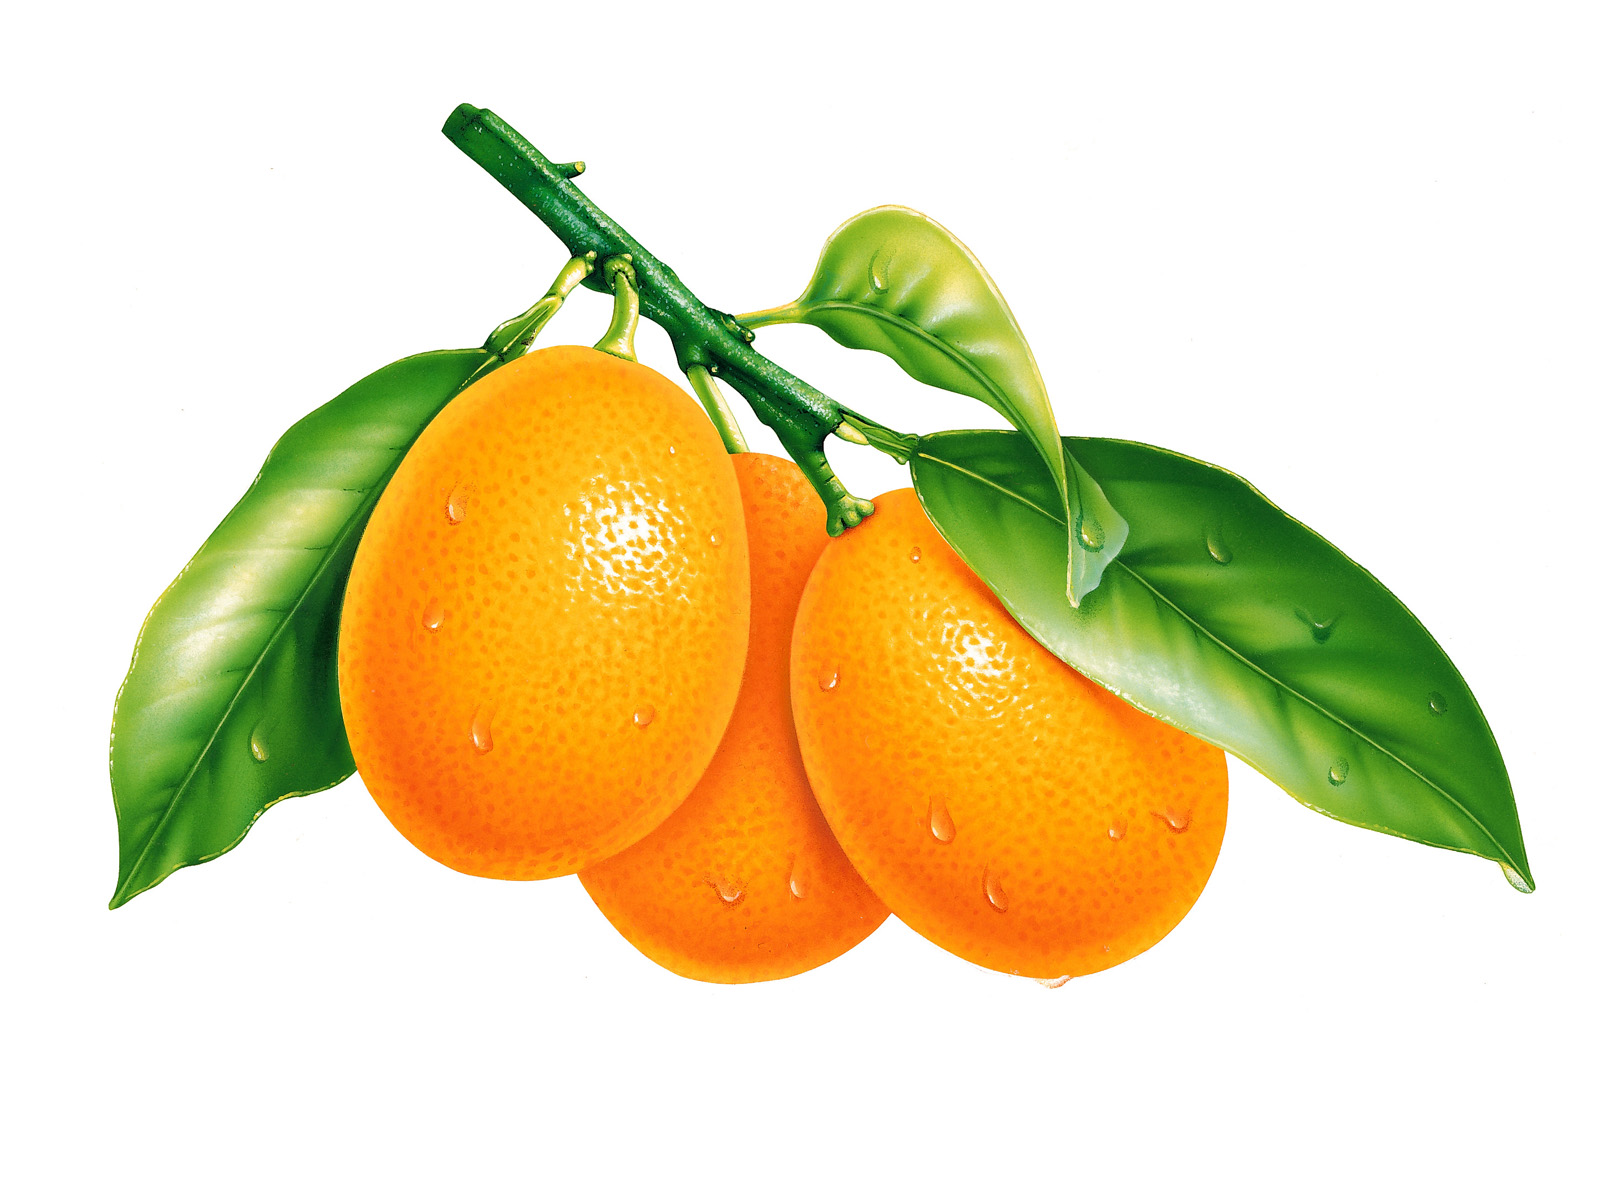 oranges-and-leaves-wallpapers_13089_1600x1200